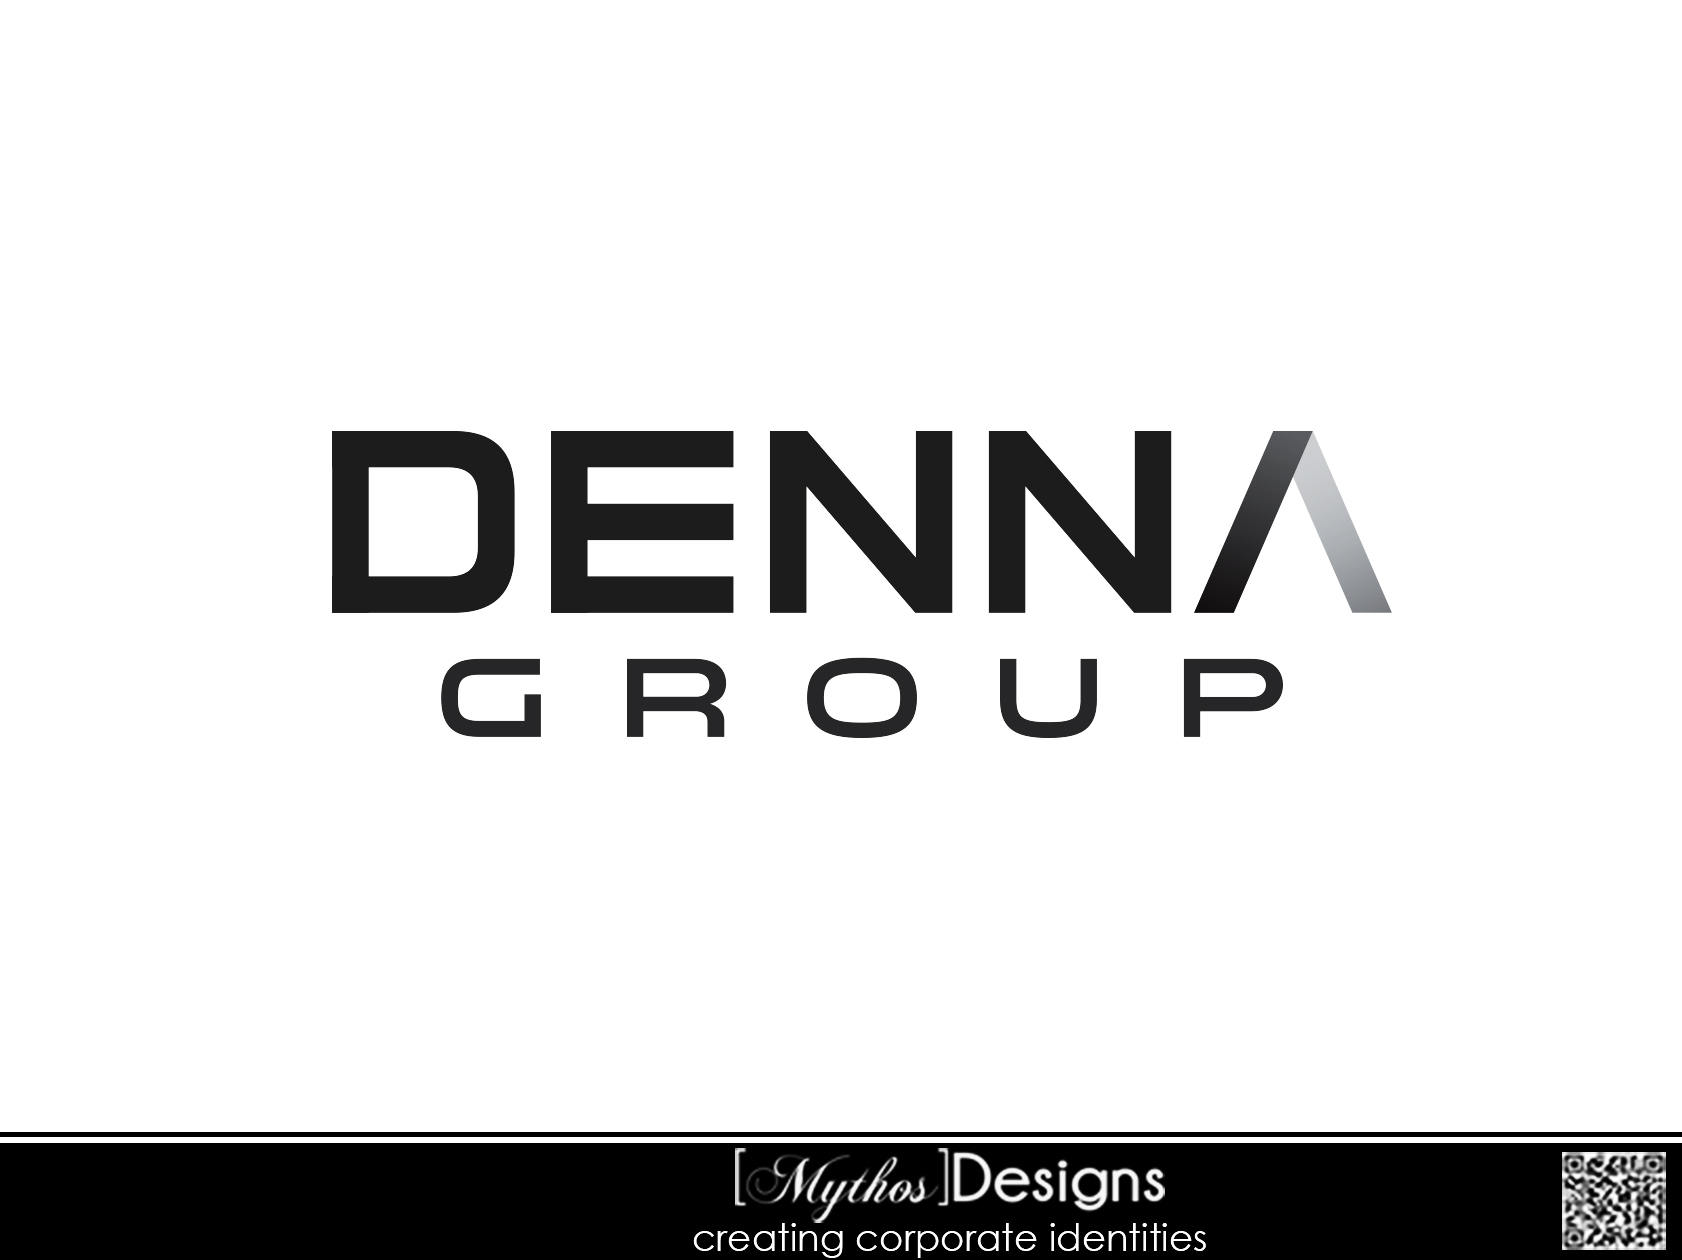 Logo Design by Mythos Designs - Entry No. 152 in the Logo Design Contest Denna Group Logo Design.